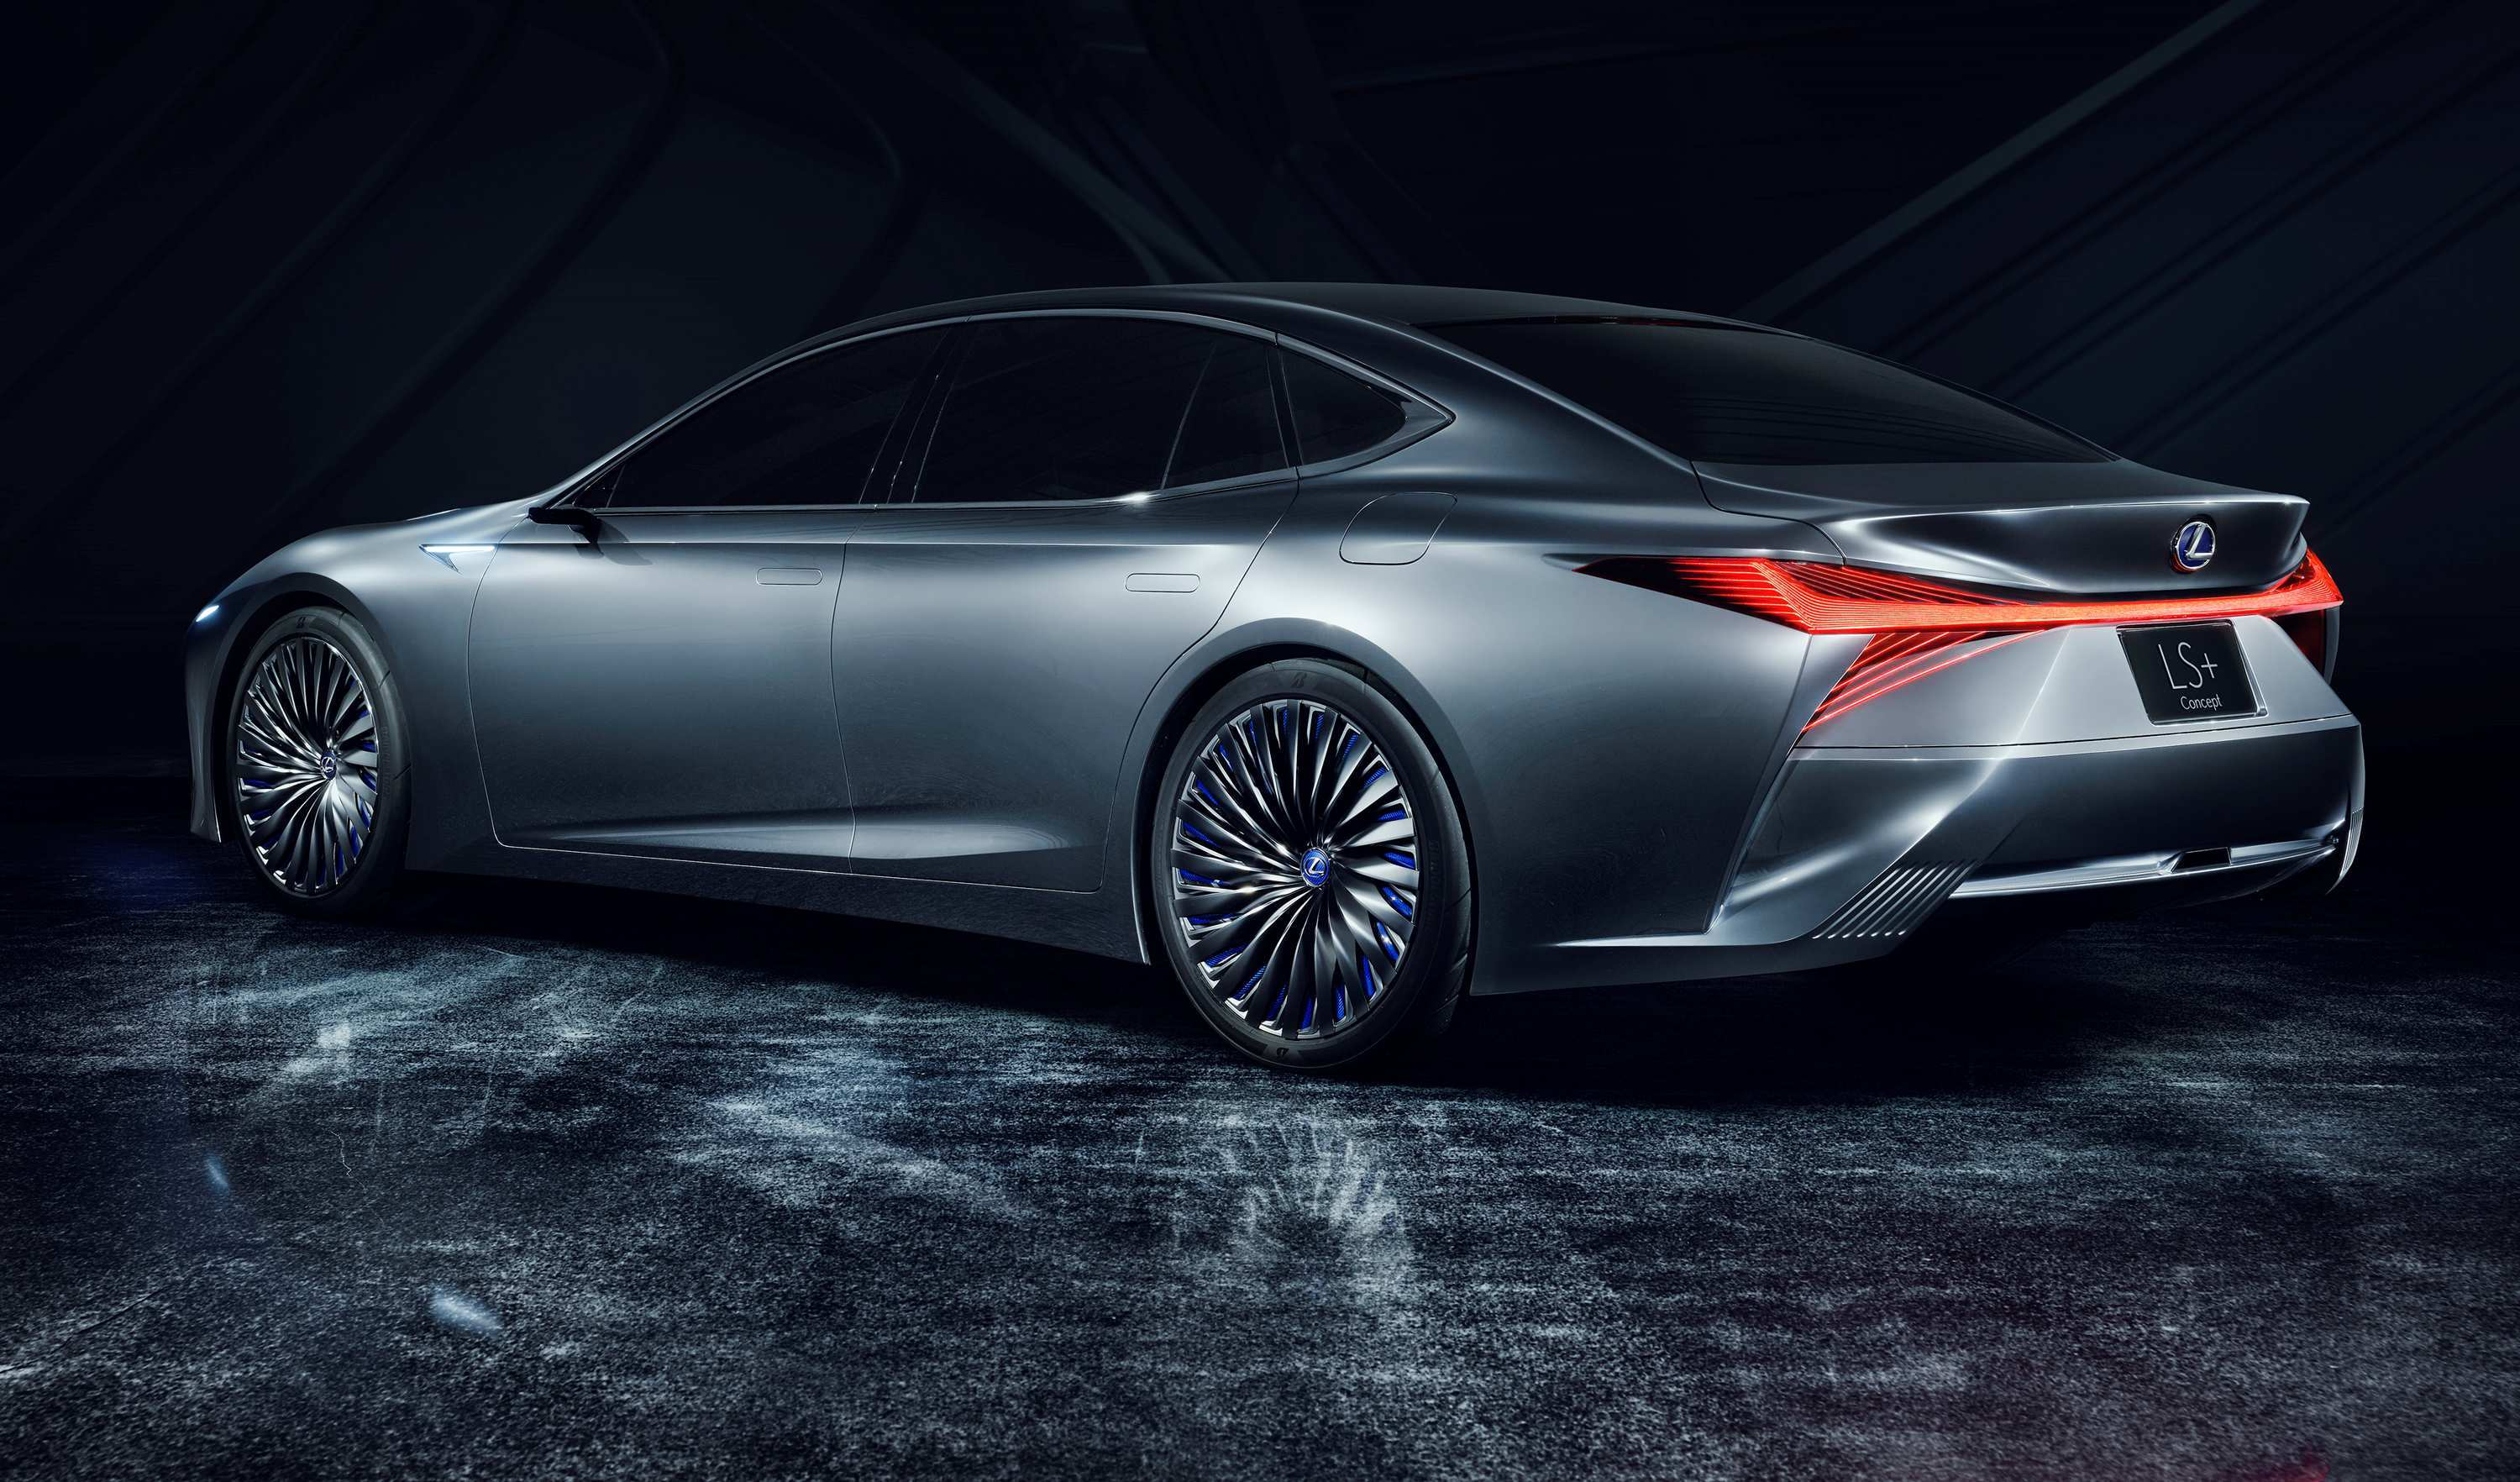 42 Best Review Lexus New Concepts 2020 Spesification for Lexus New Concepts 2020